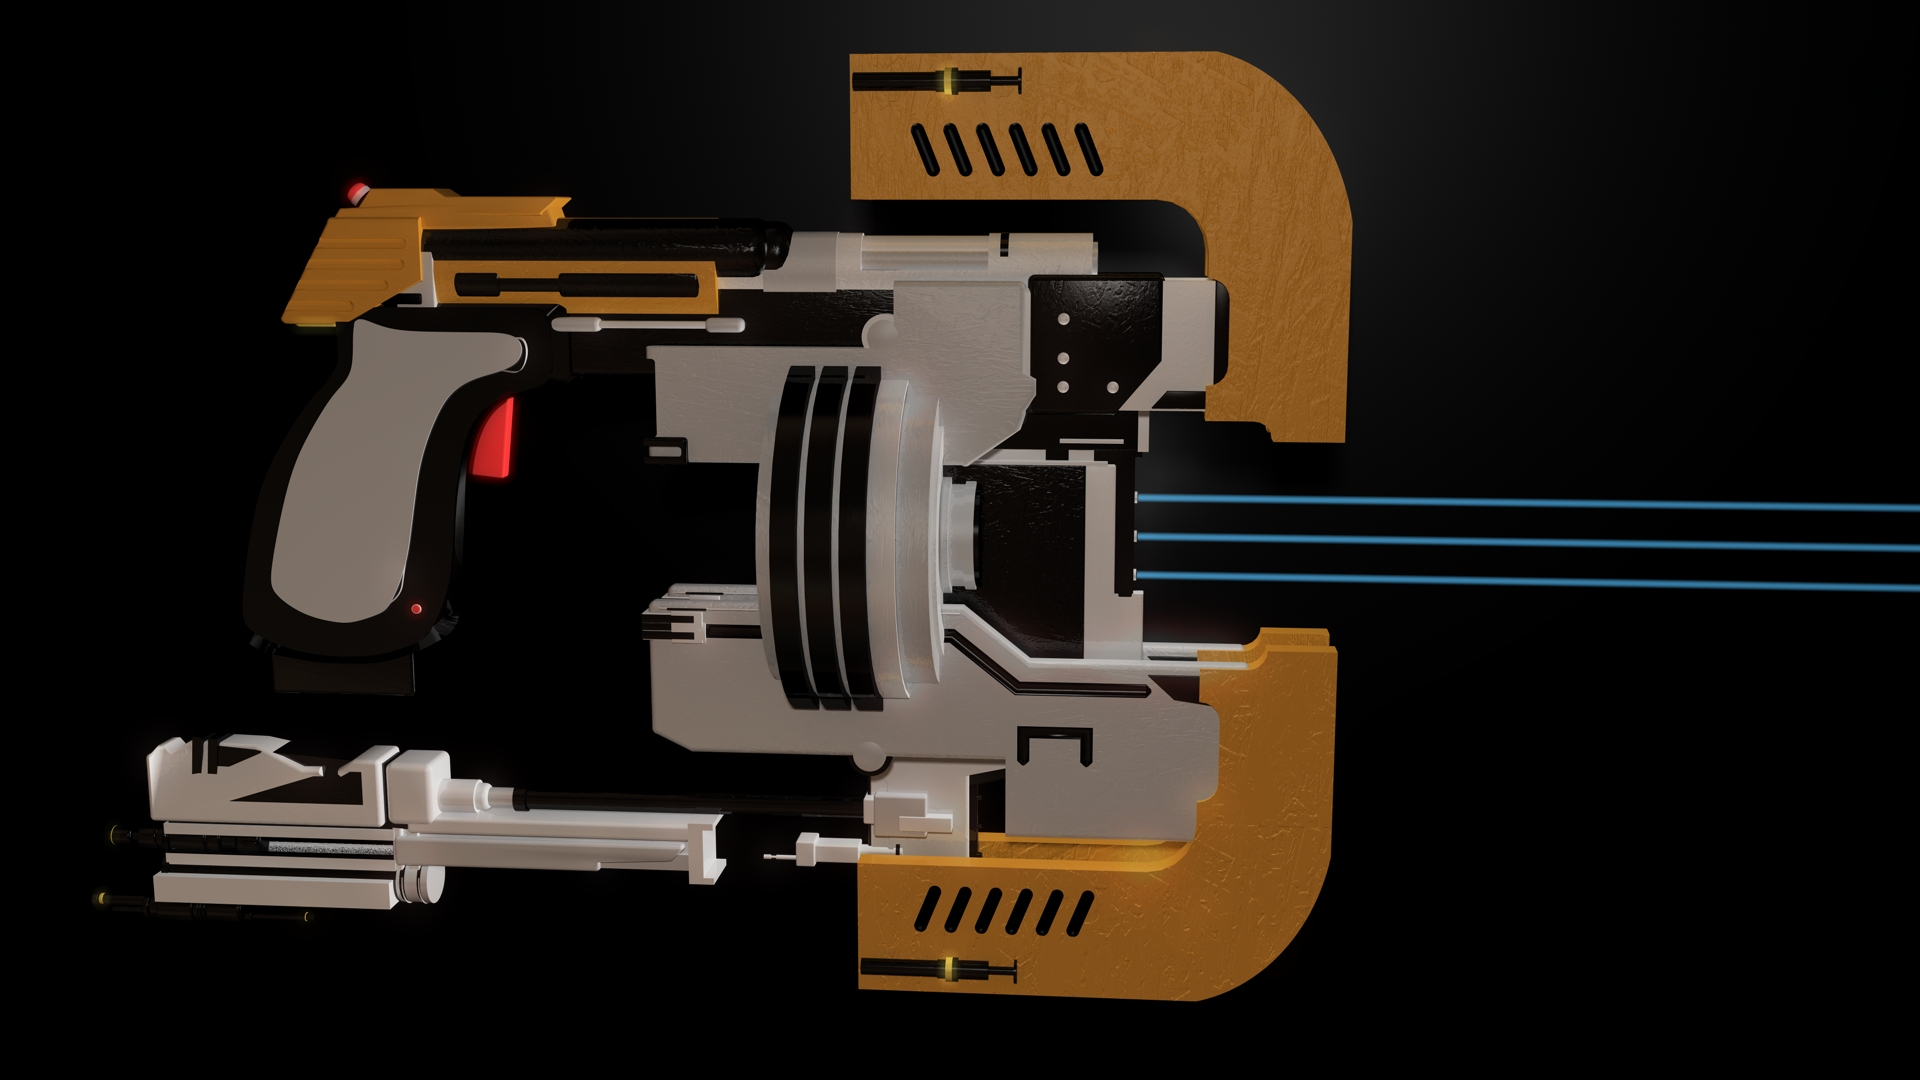 Dead Space Plasma Cutter 2 By 100seedlesspenguins On Deviantart